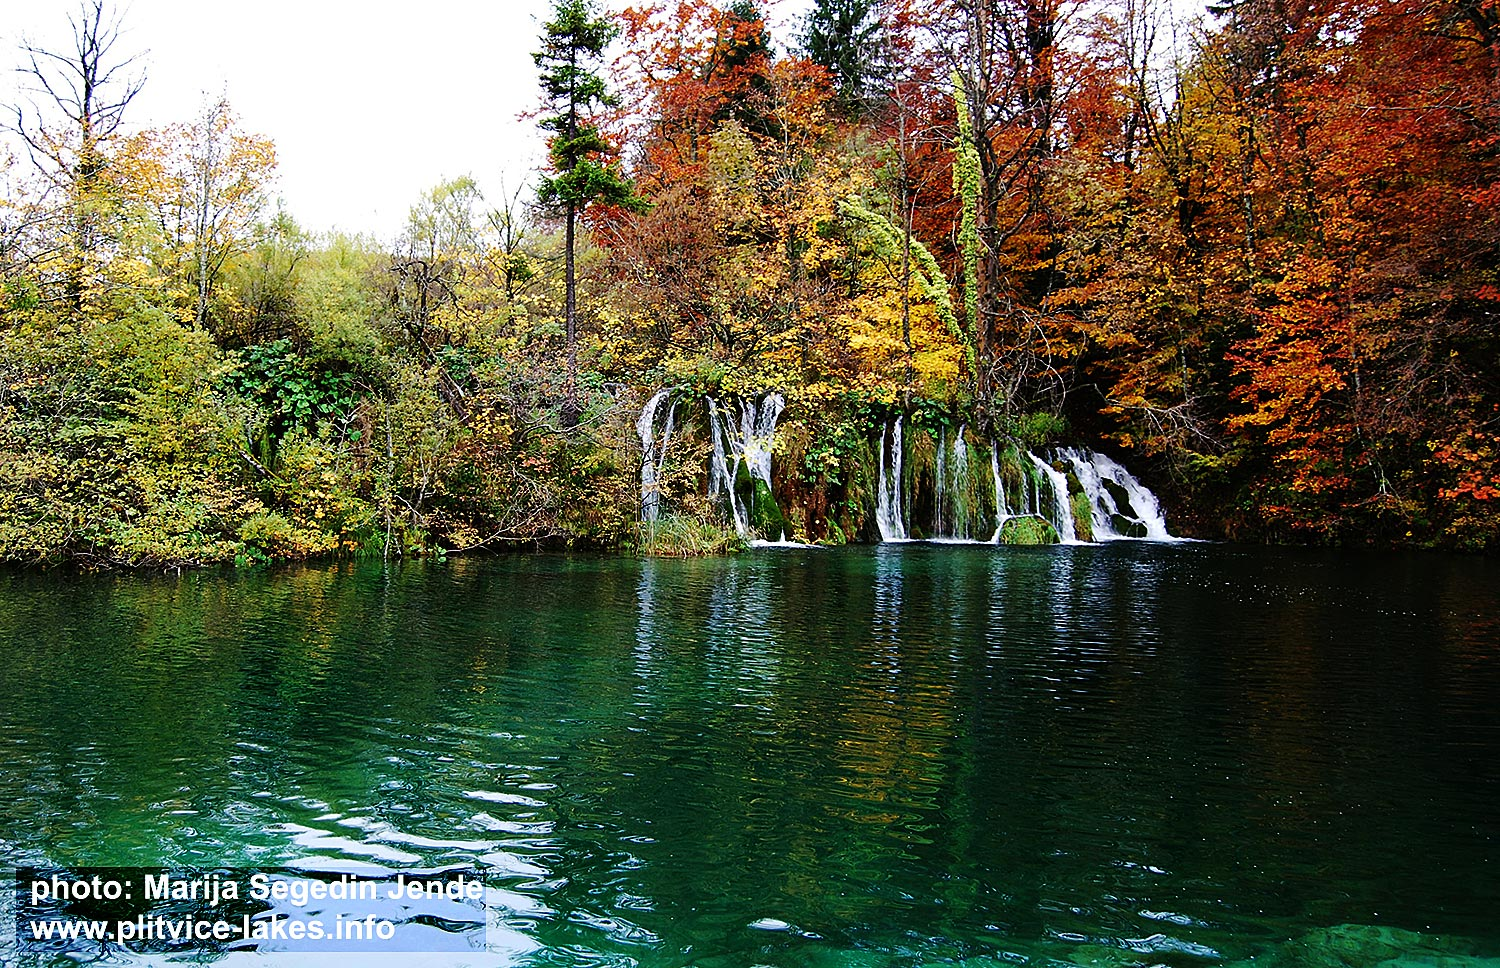 Waterfall at Plitvice in Autumn (2016)